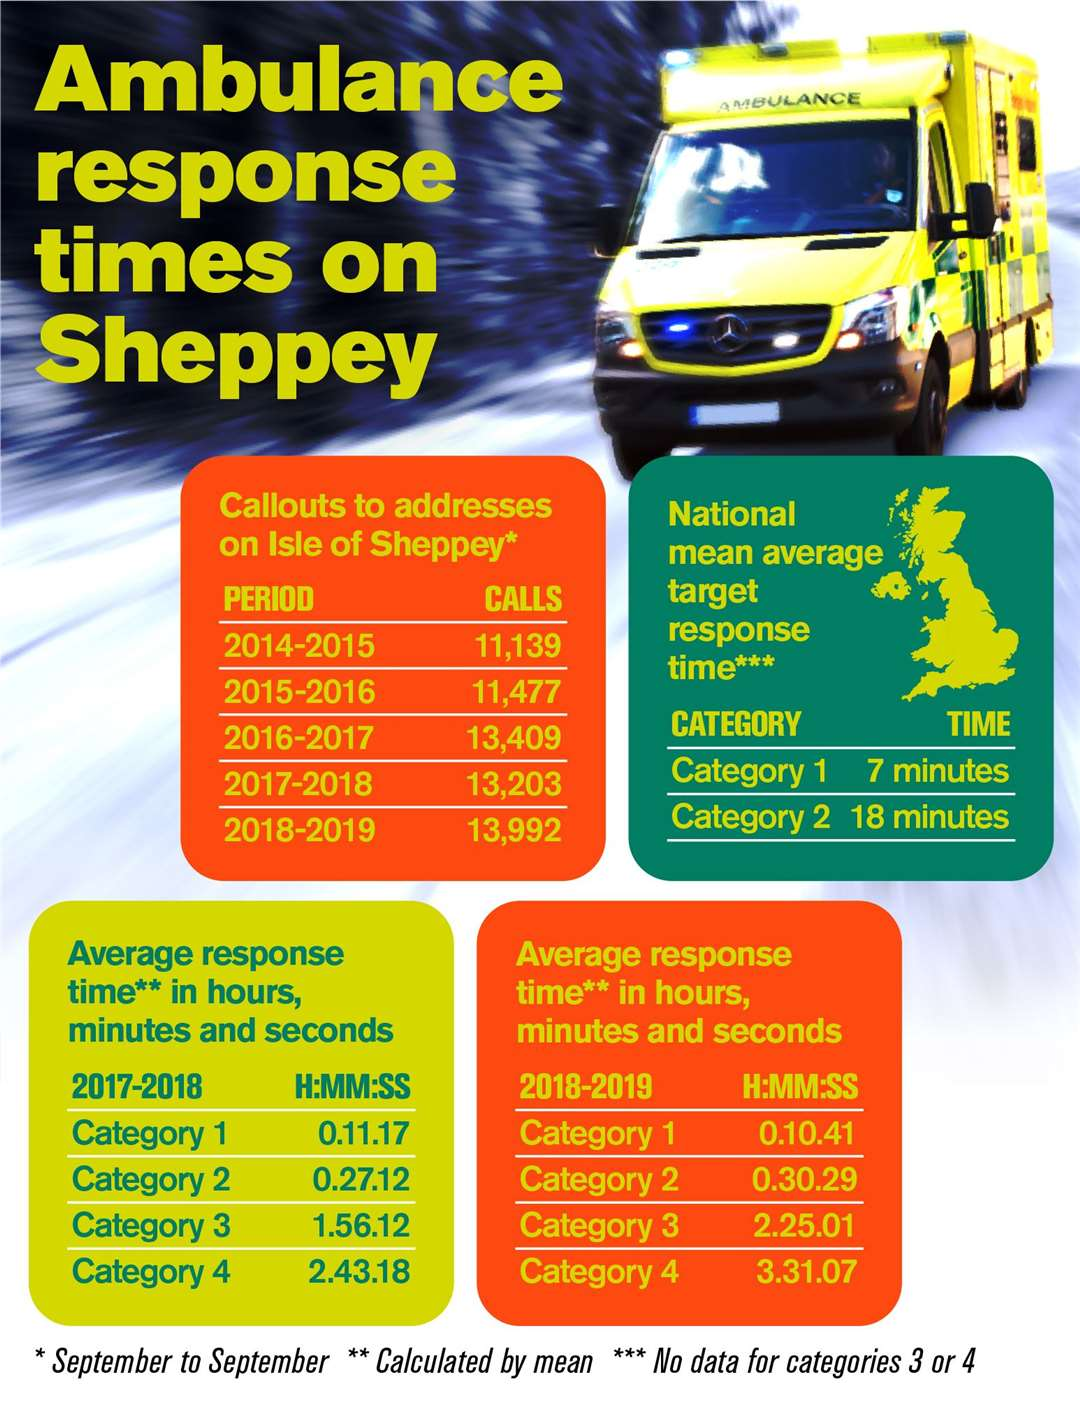 Ambulance response times for calls to the Isle of Sheppey. Image: Editorial Graphics (21041453)